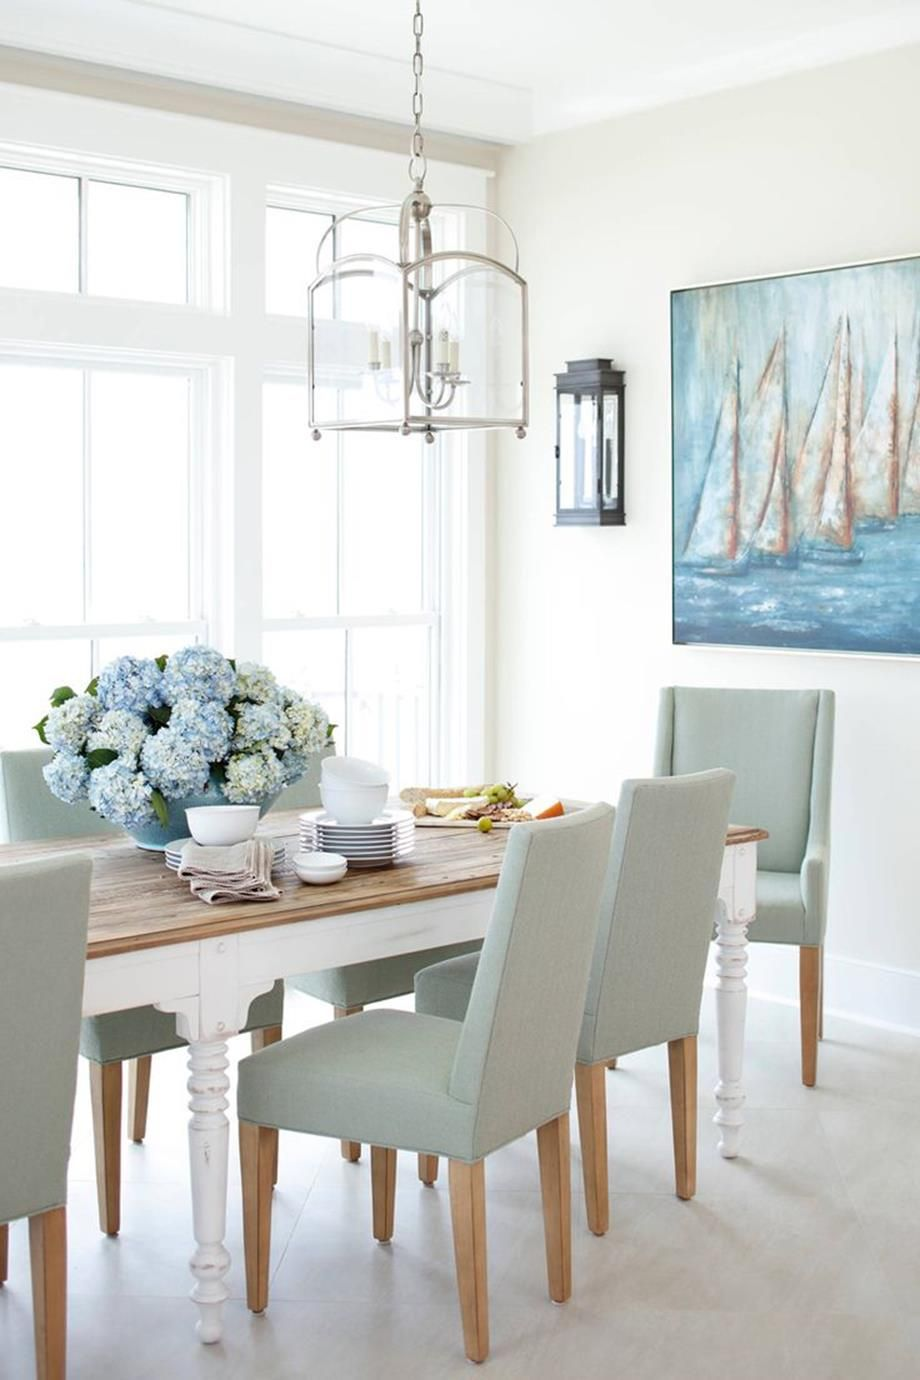 50 Stunning Beach Style Dining Room Decorating Ideas In 2020